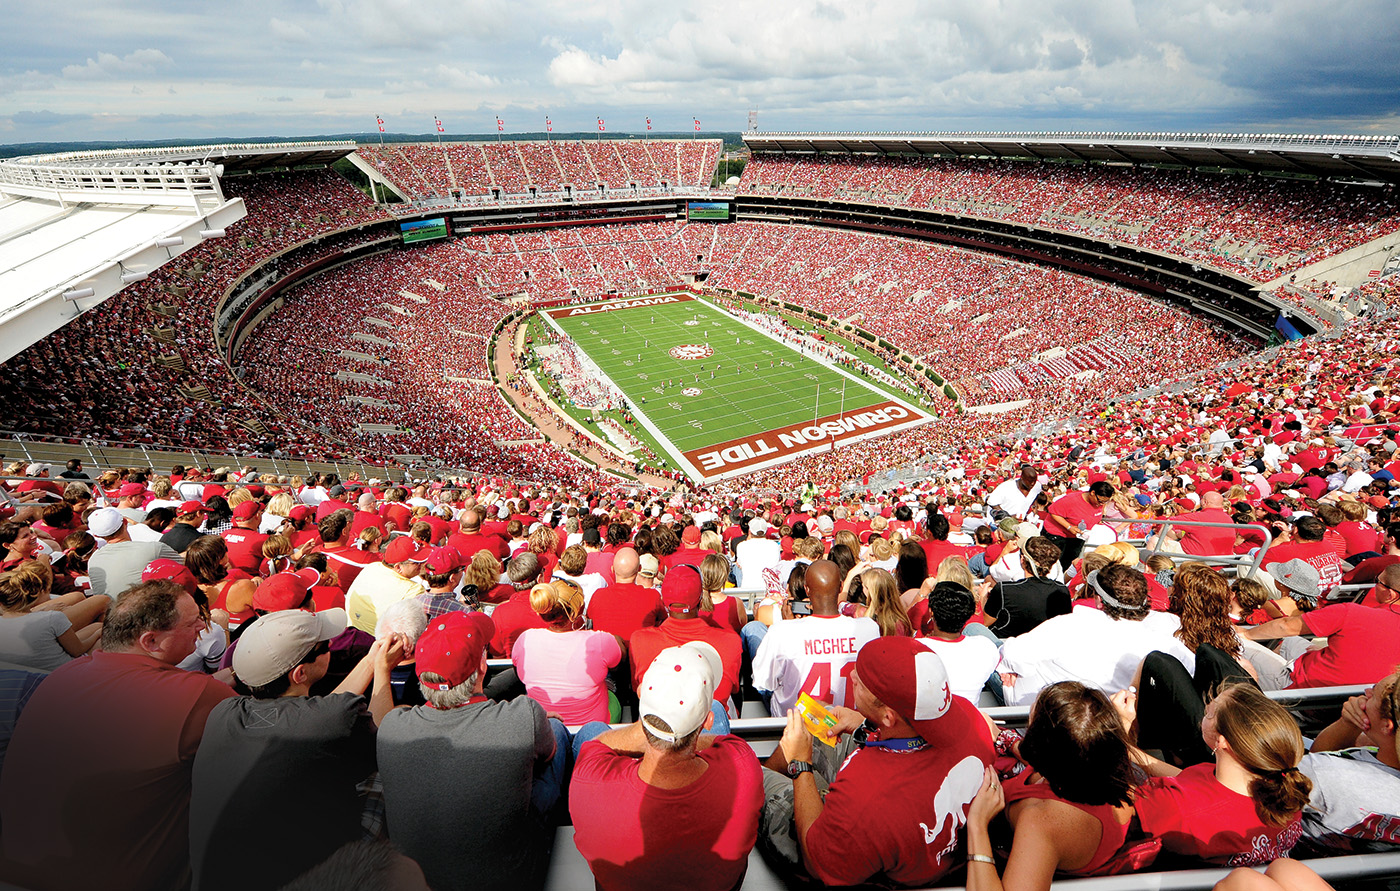 Bryant-Denny Stadium is home to the Alabama Crimson Tide, who have won the national championship three of the last four years. Photo courtesy of Lance King/Replay Photos/Getty Images